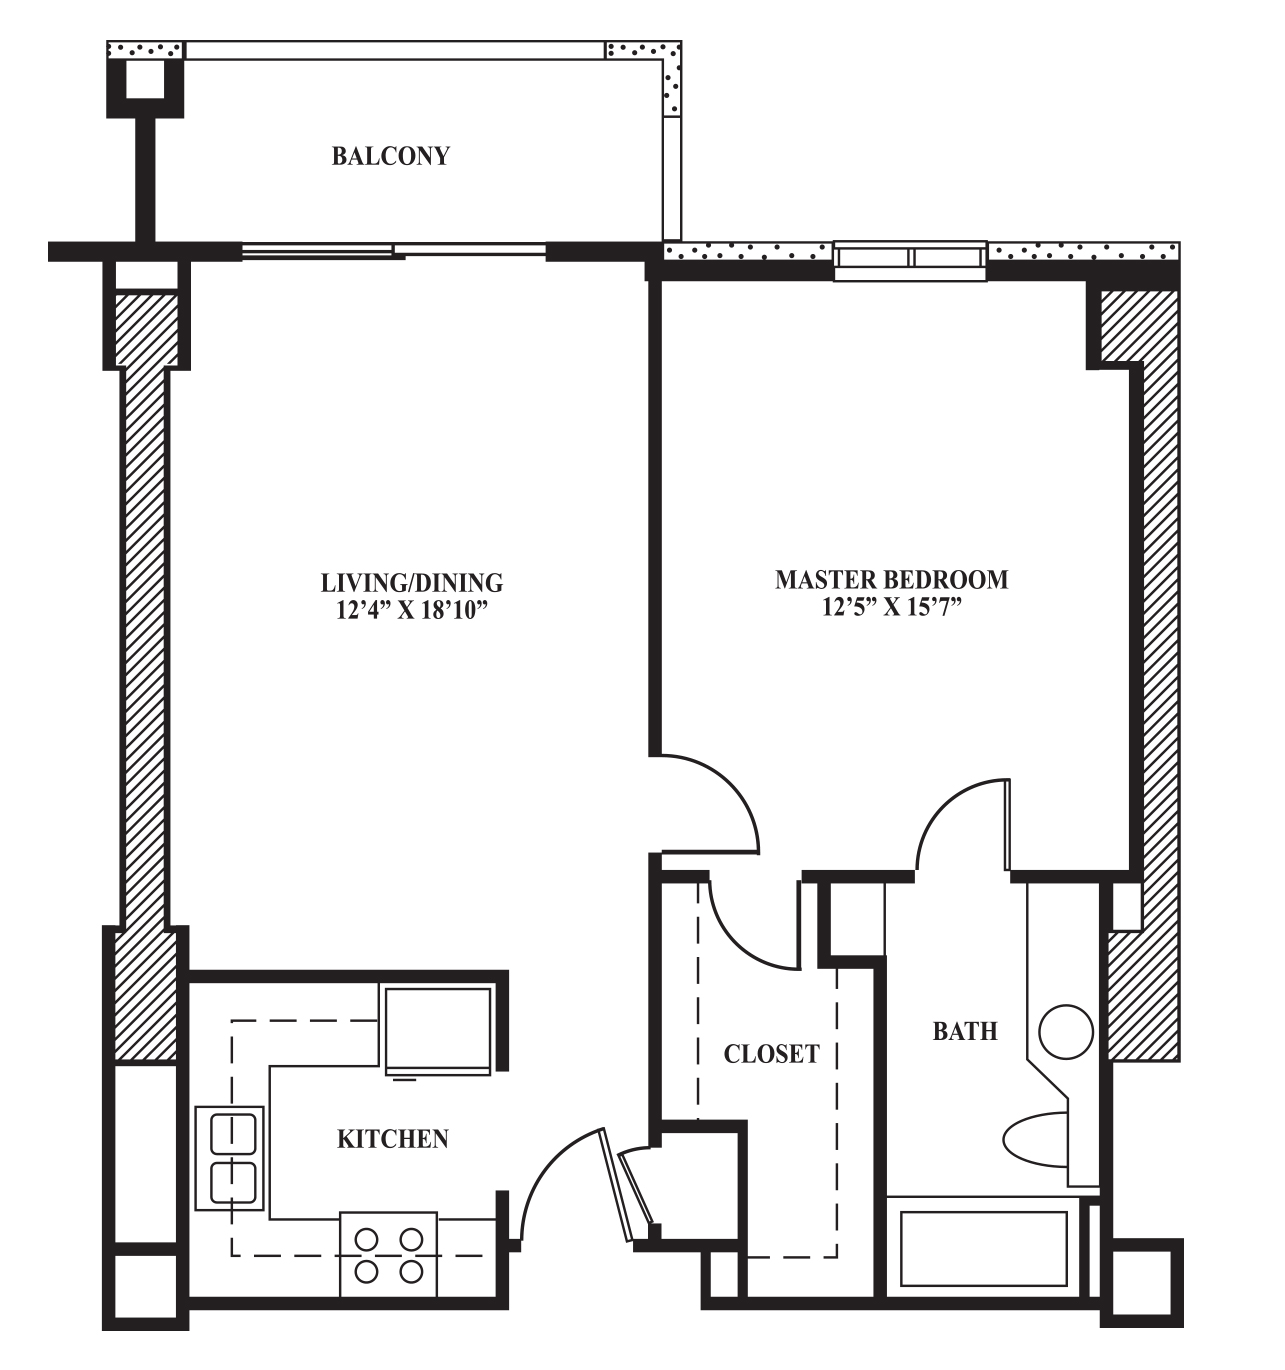 Floor Plan A 688 Sq Ft The Towers On Park Lane